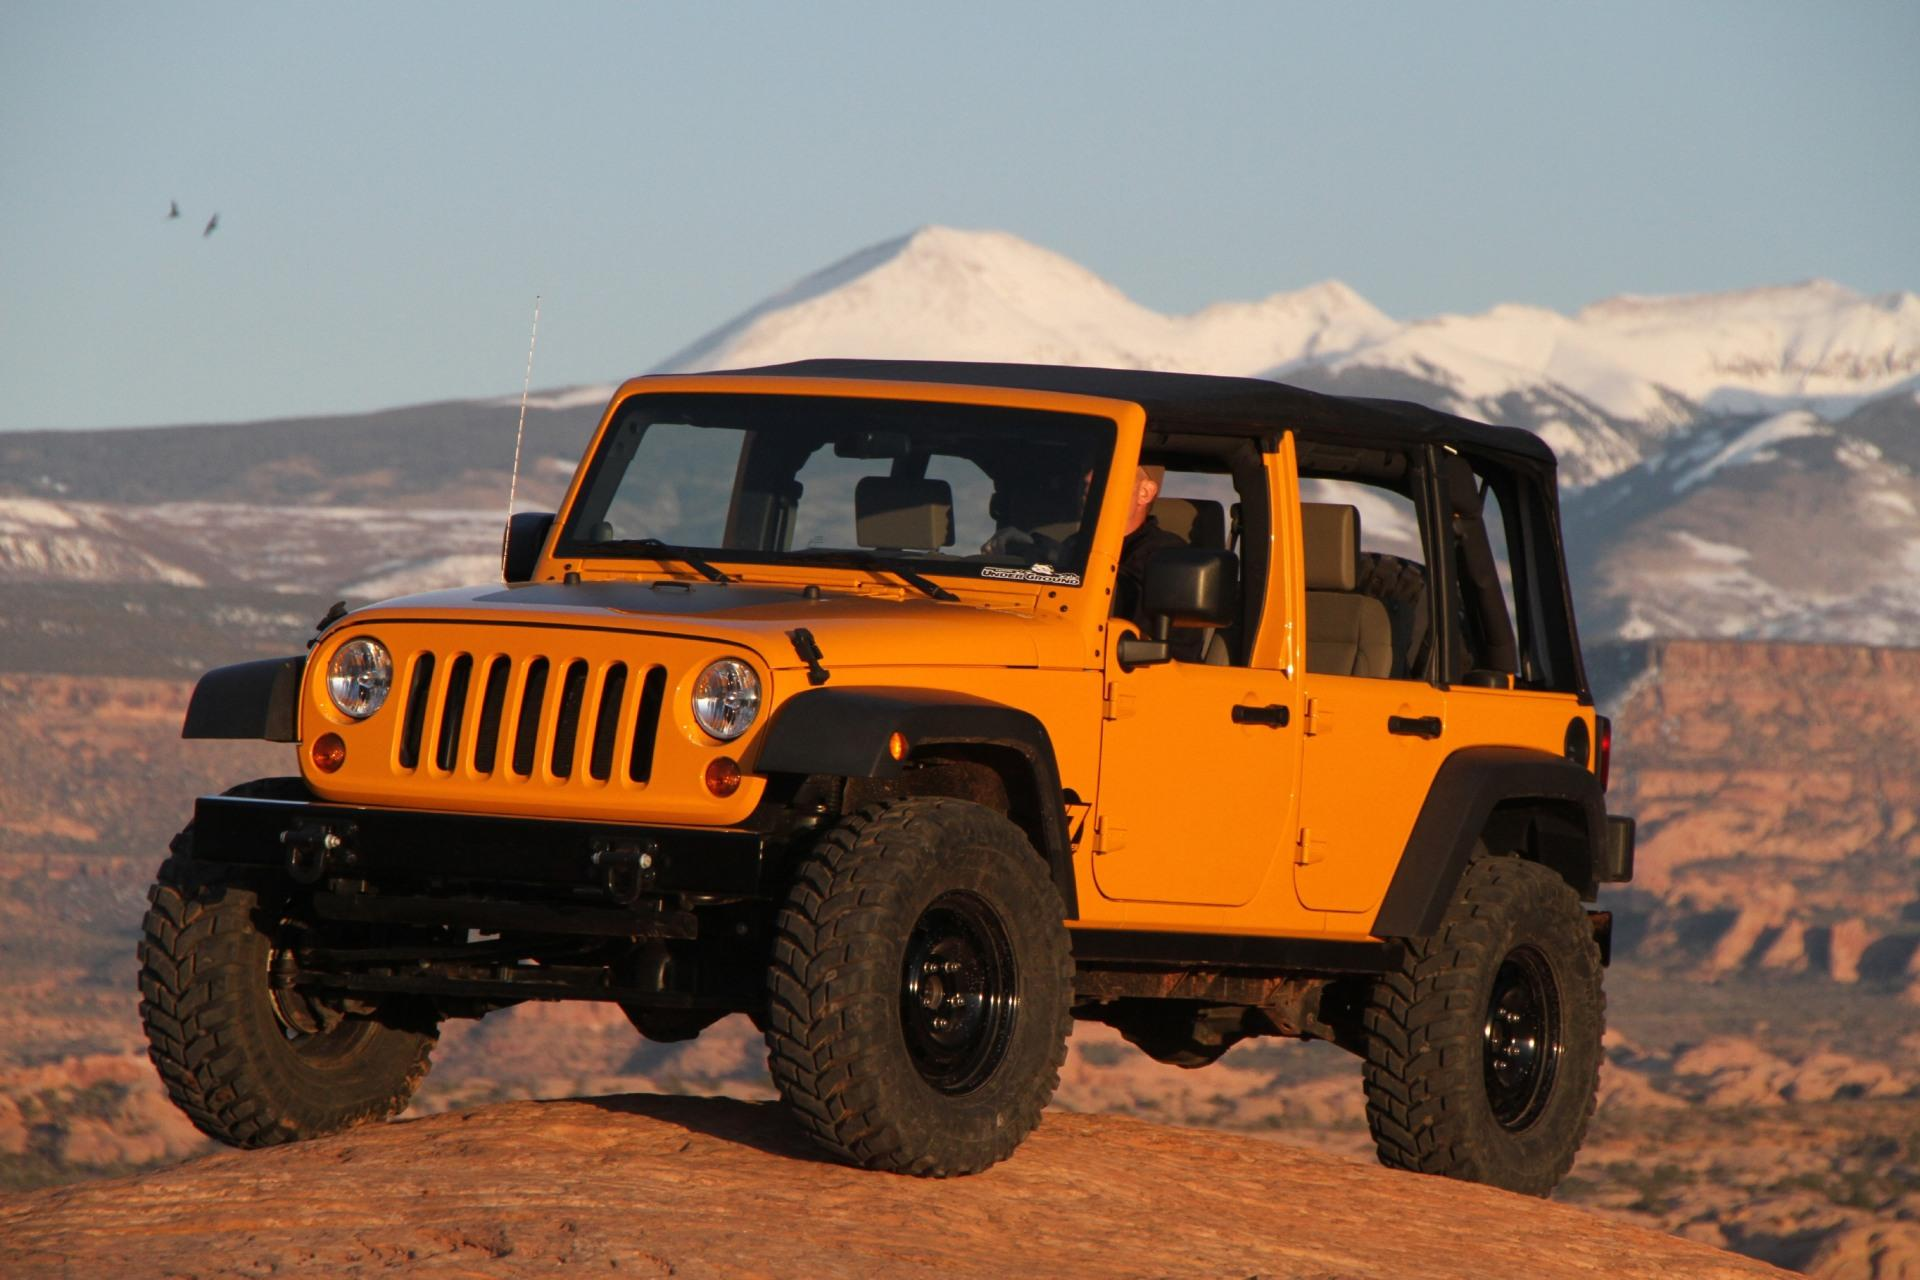 Tj Auto Sales >> 2010 Jeep Wrangler J7 News and Information | conceptcarz.com